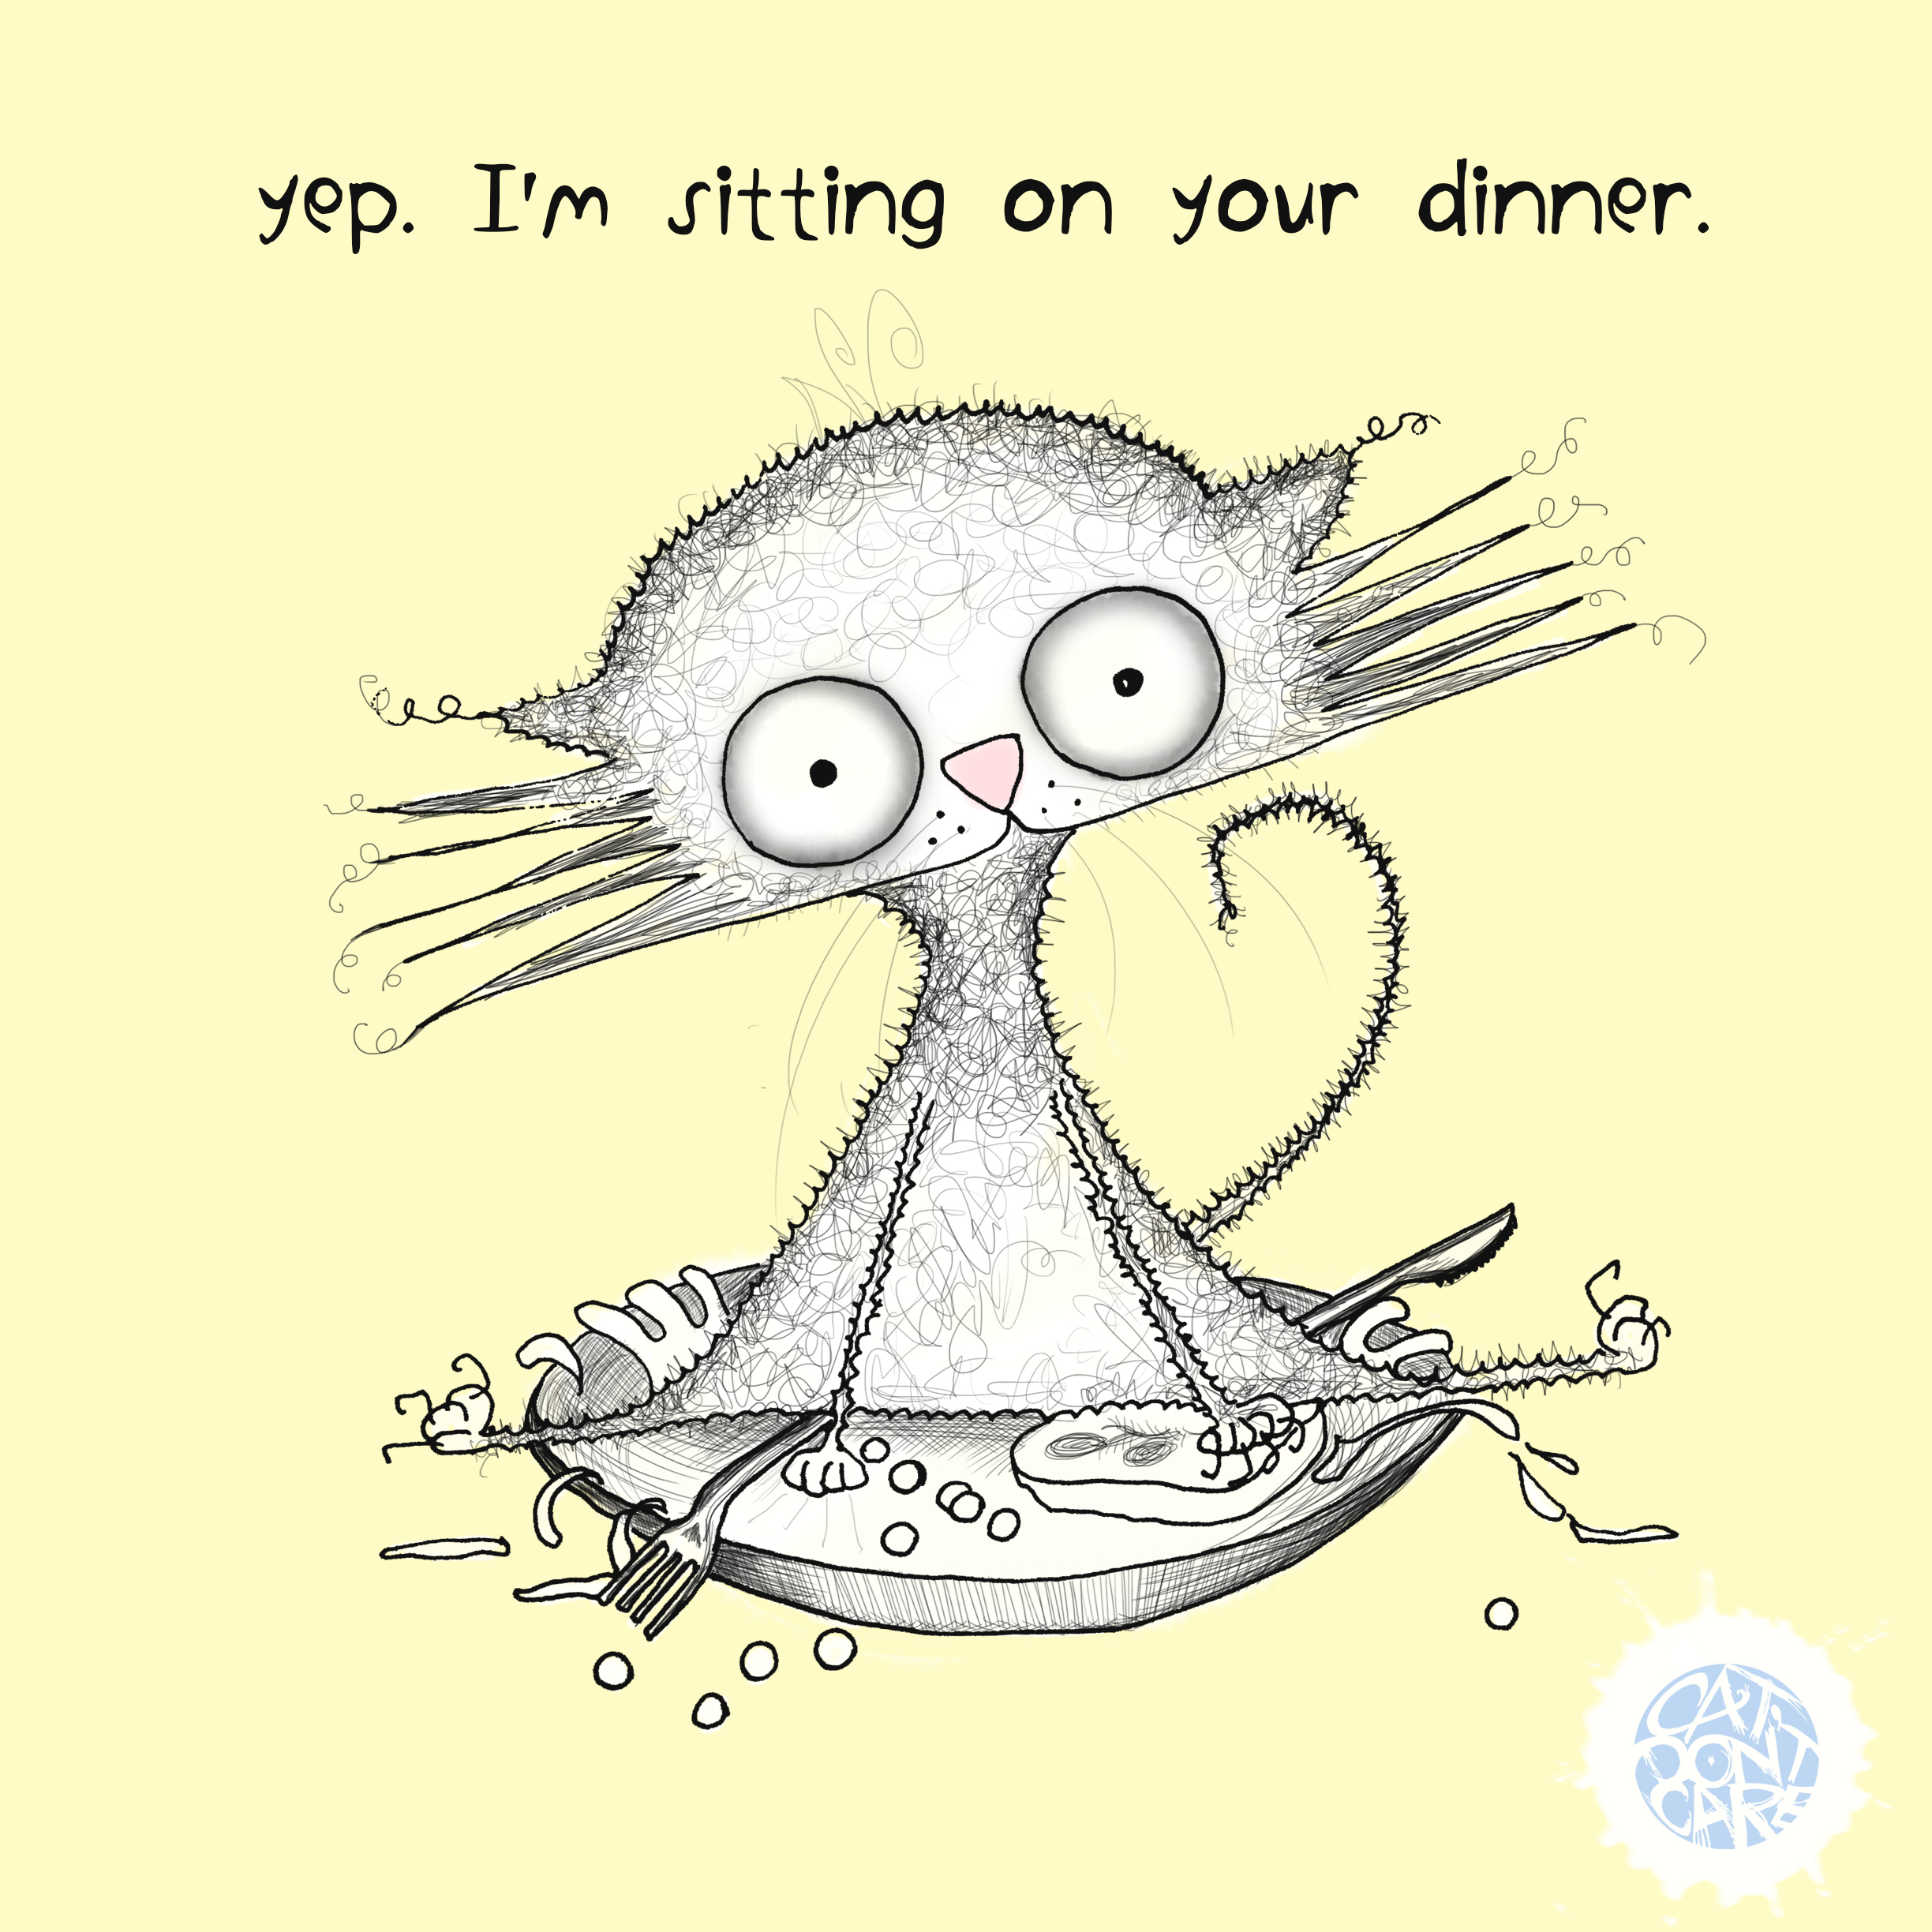 Cat sits on dinner plate - yep i'm sitting on your dinner - Natalie Palmer Sutton Illustration-animation - cat dont care